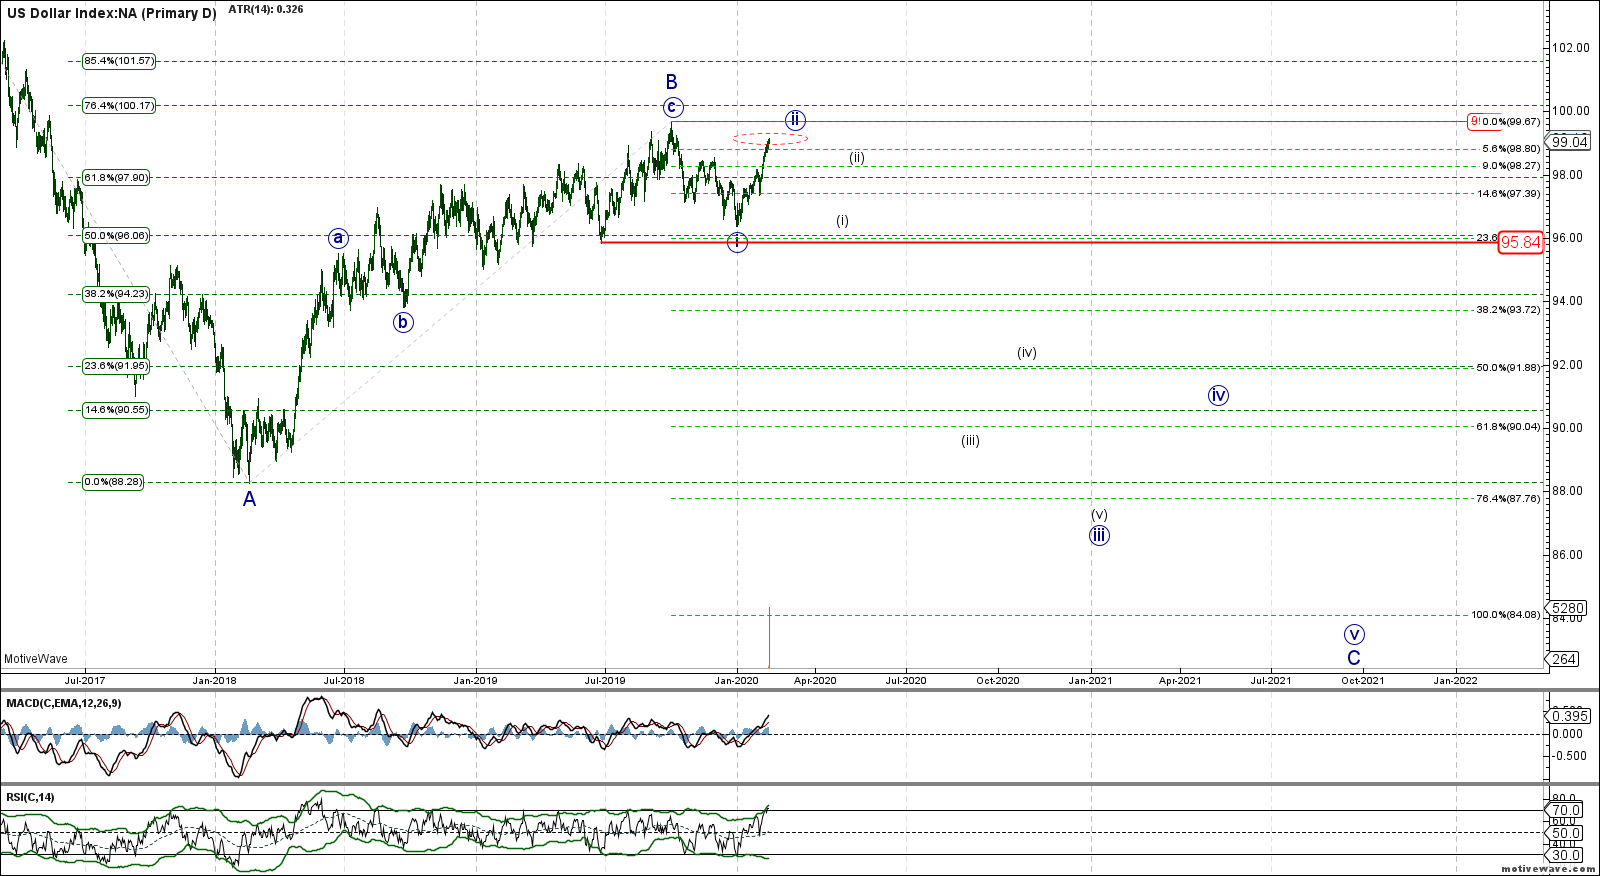 BaseCase - .DXY - Primary D - Feb-14 0920 AM (1 day)